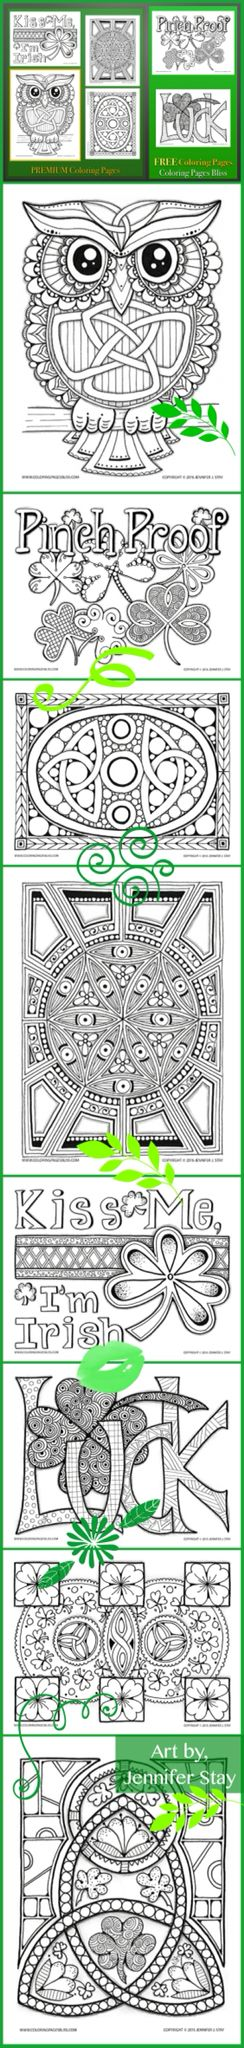 Coloring Pages For St Patricks Day Printable By Jennifer Stay Full Of